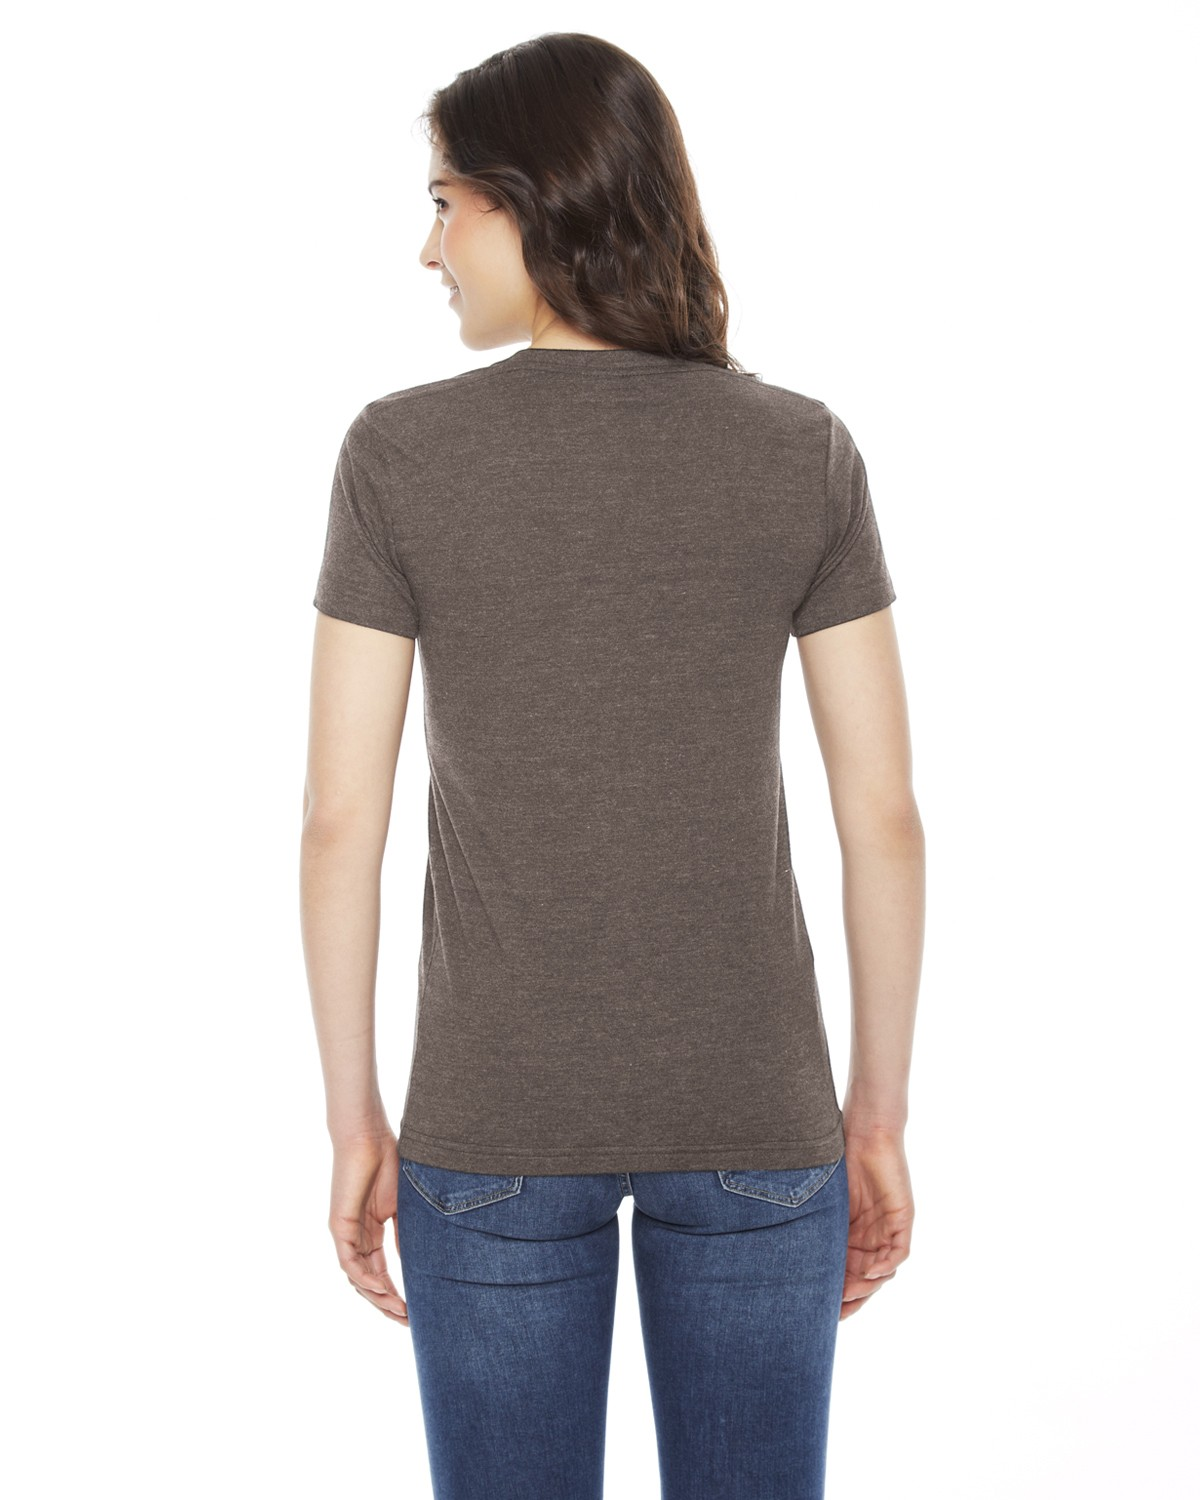 TR301W American Apparel TRI COFFEE